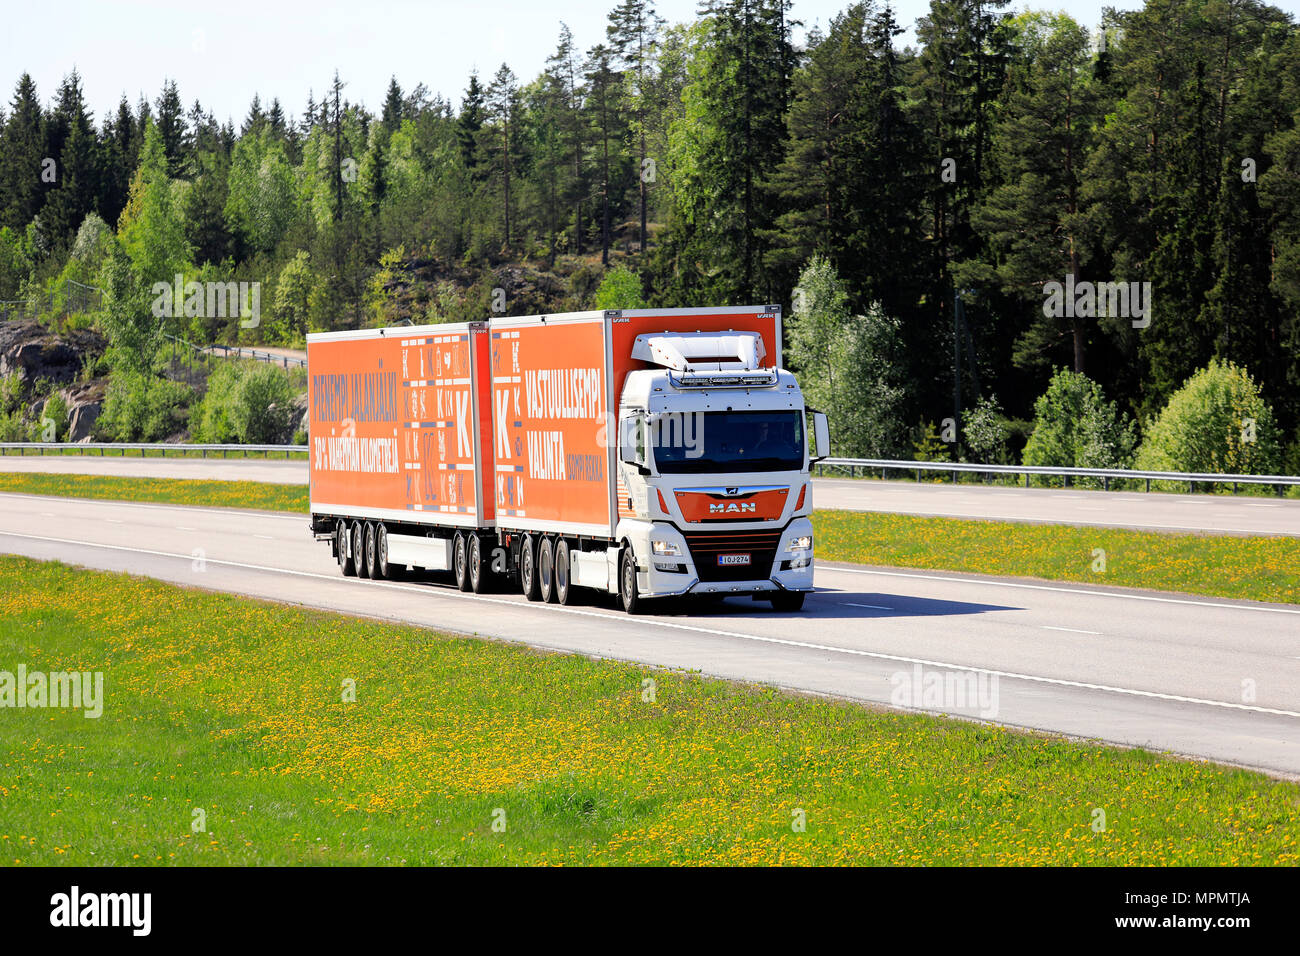 Man TGX 35.580 high capacity transport truck for Kesko Logistics. The 31,2m long 74tn road train operates by permission. Paimio, Finland - May 18, 18. - Stock Image